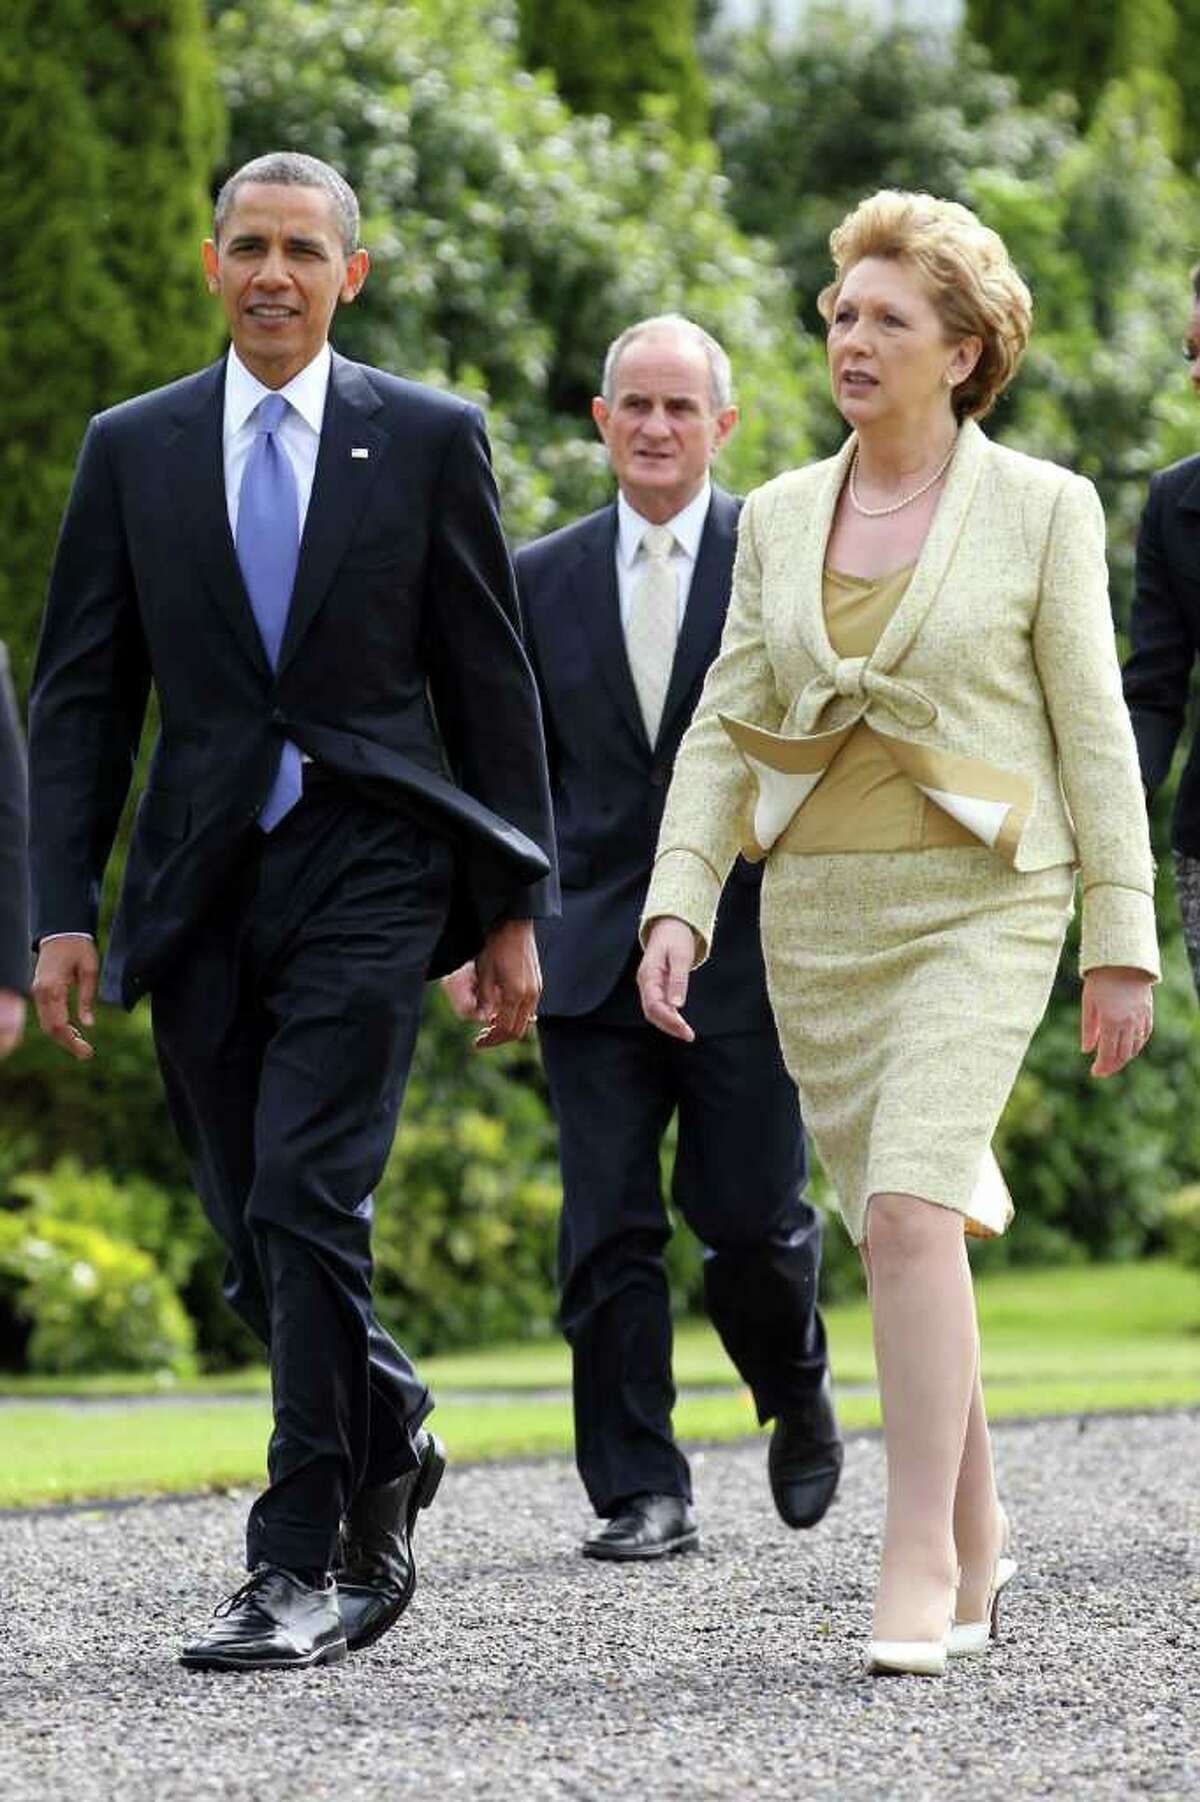 DUBLIN, IRELAND - MAY 23: U.S. President Barack Obama and Irish President Mary McAleese depart Aras an Uachtarain, the official residence of the President of Ireland, ahead of Dr. Martin McAleese May 23, 2011 in Dublin, Ireland. Obama is visiting Ireland for one day. He will meet with distant relatives in Moneygall and speak at a rally in central Dublin after a concert. (Photo by Irish Government - Pool /Getty Images)